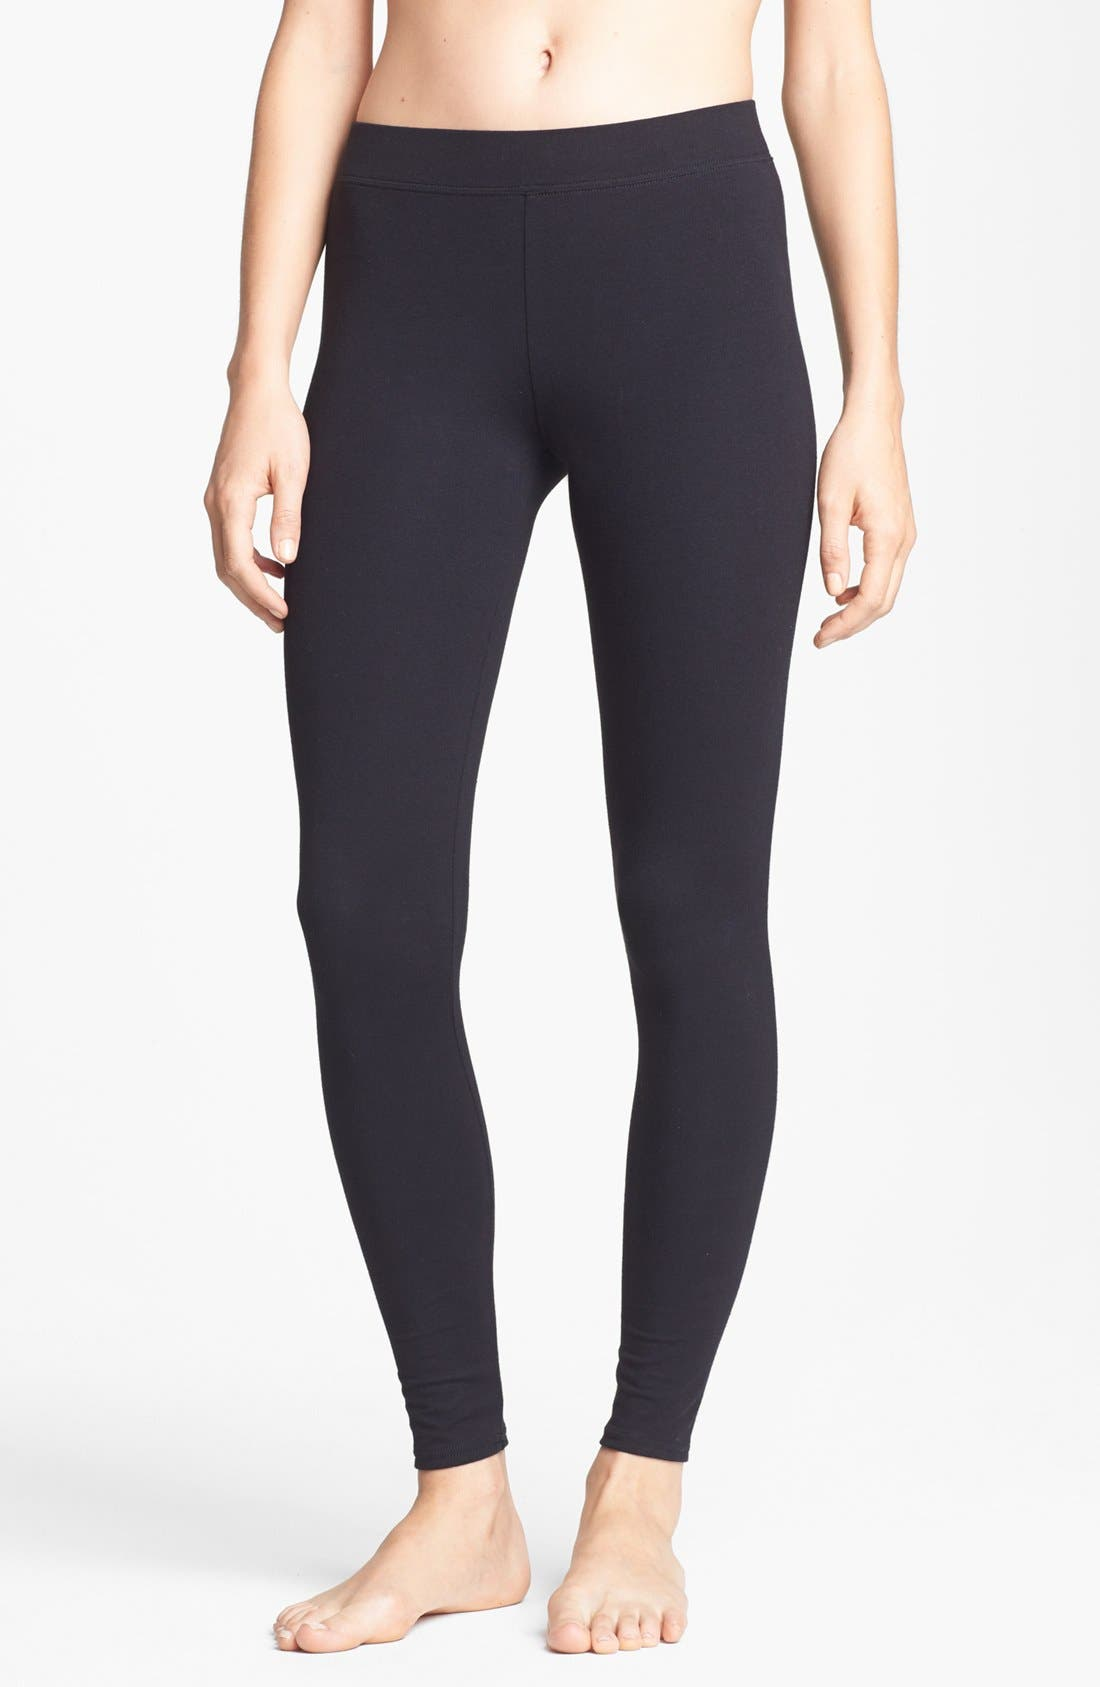 Alternate Image 1 Selected - Nordstrom Go-To Leggings